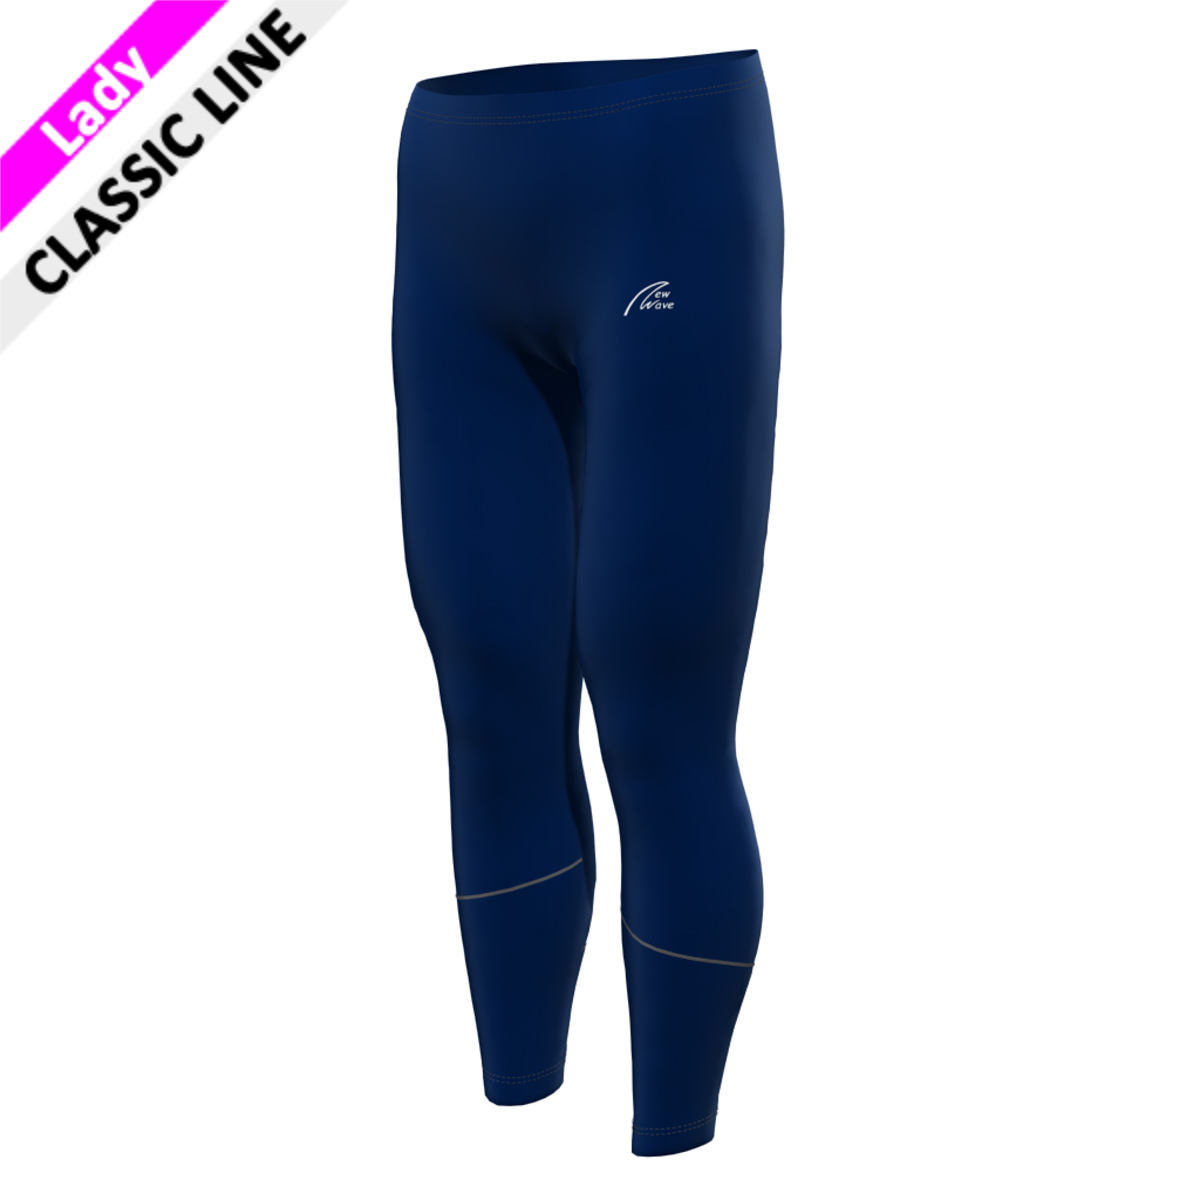 Uni Reflex - Tight marine blau F